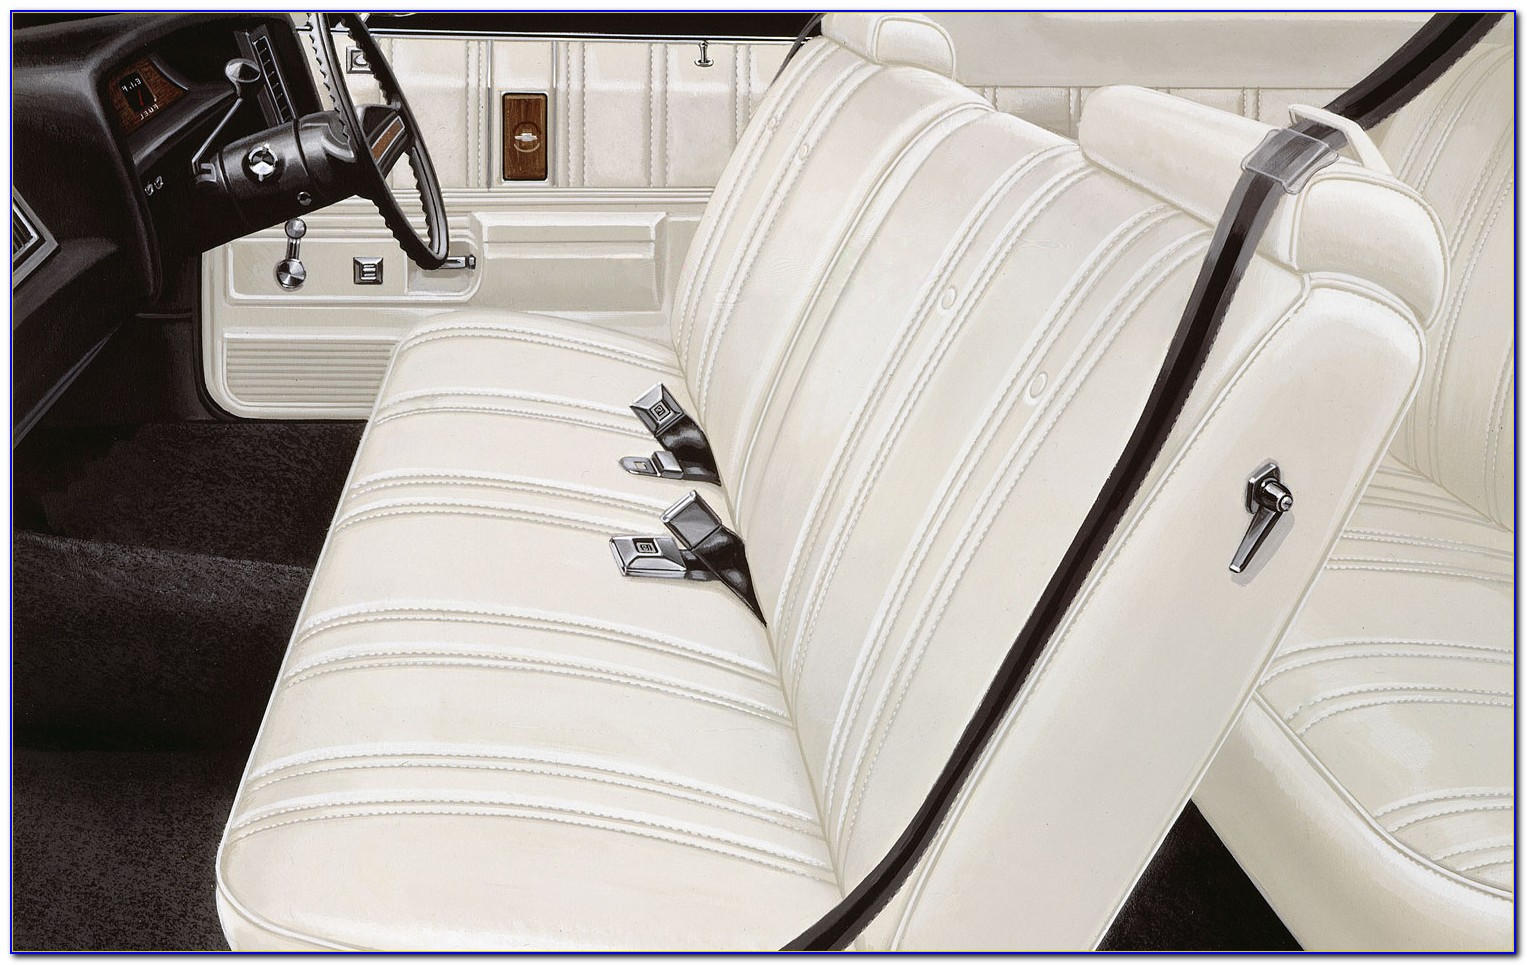 2013 Chevy Impala Bench Seat